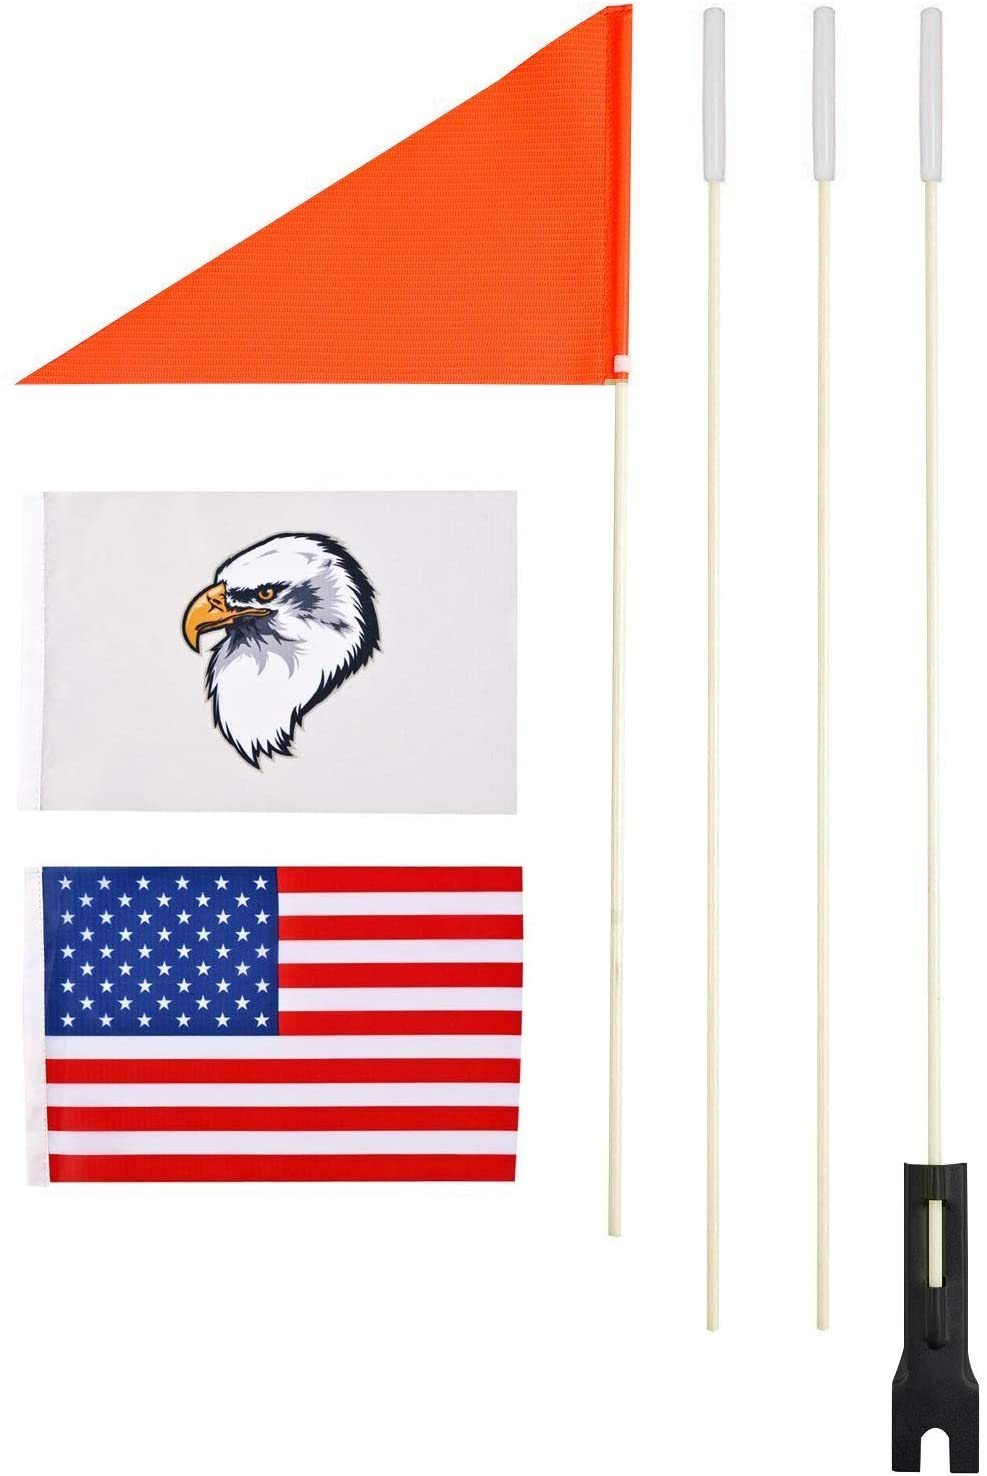 Upgraded Bike Flags with Pole 6 ft High Visibility Orange flags with Heavy Duty Fiberglass Flag Pole, Orange Flag, Eagle and American Flag